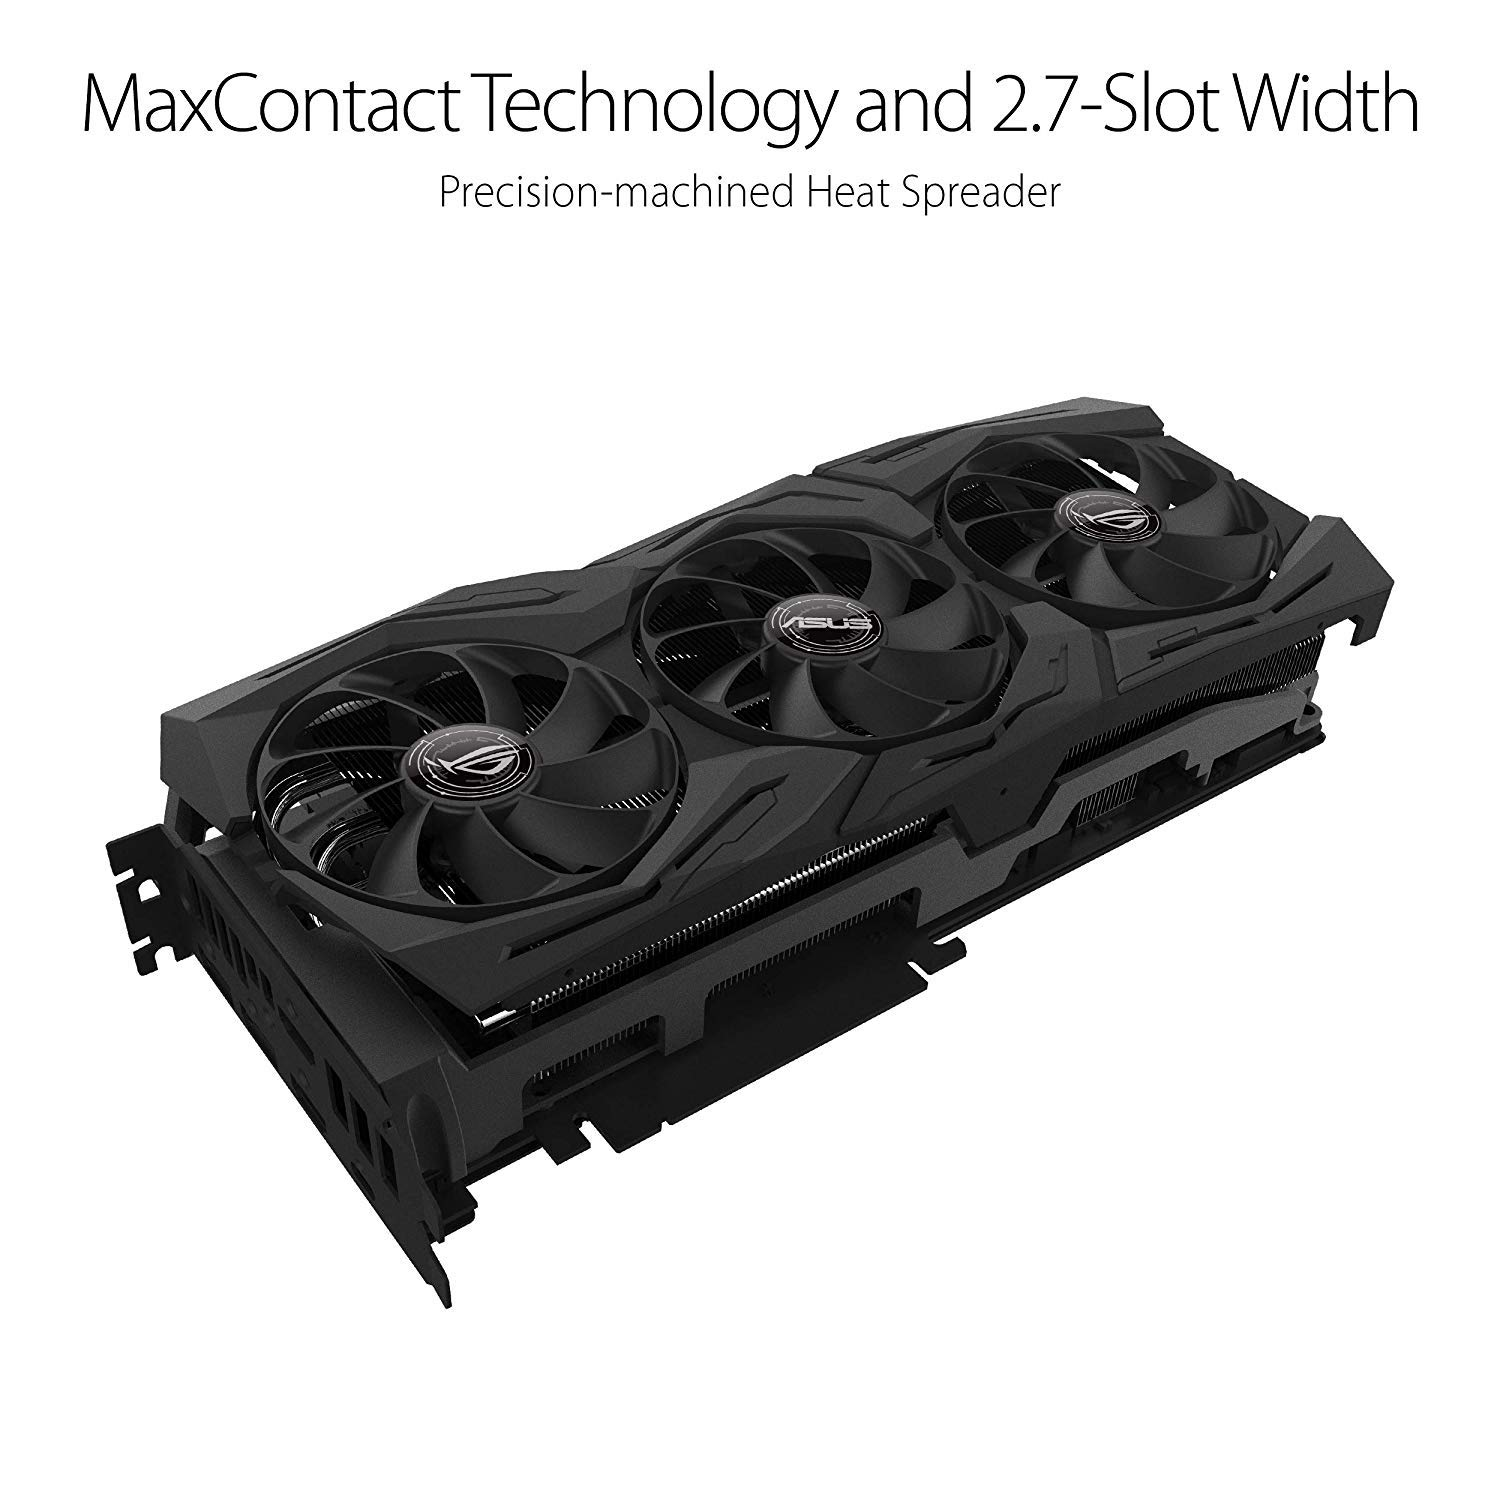 ASUS ROG Strix GeForce RTX 2080TI Overclocked 11G GDDR6 HDMI DP 1.4 USB Type-C Gaming Graphics Card (ROG-STRIX-RTX-2080TI-O11G) by ASUS (Image #2)